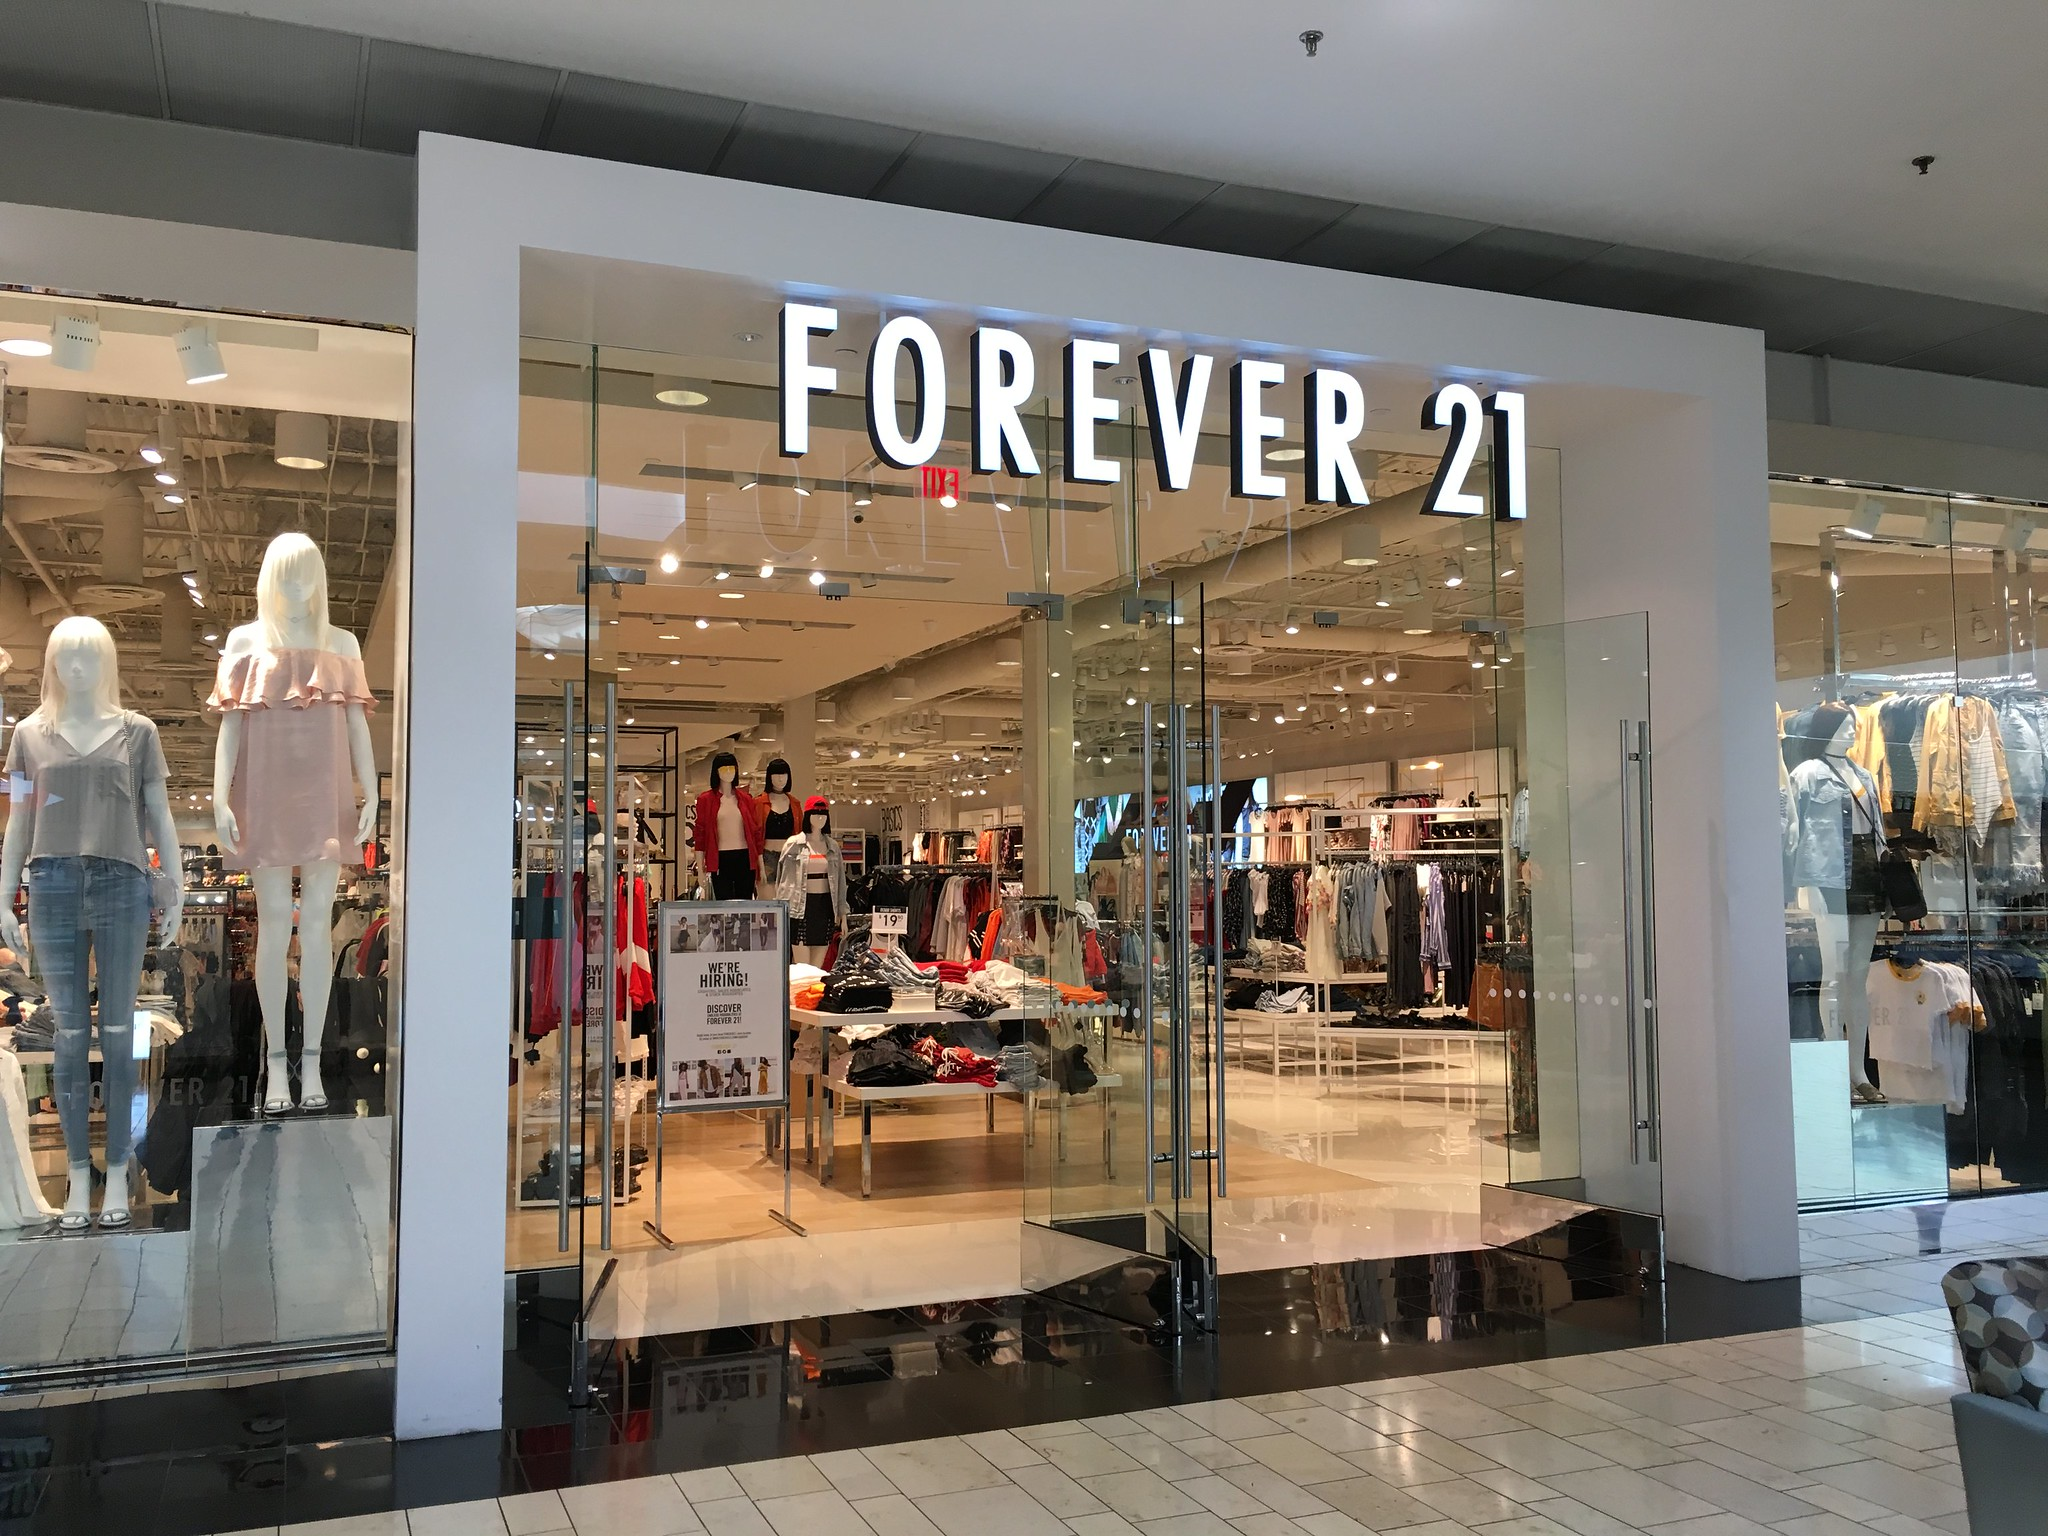 Global Fashion Retailer Forever 21 Files For Bankruptcy